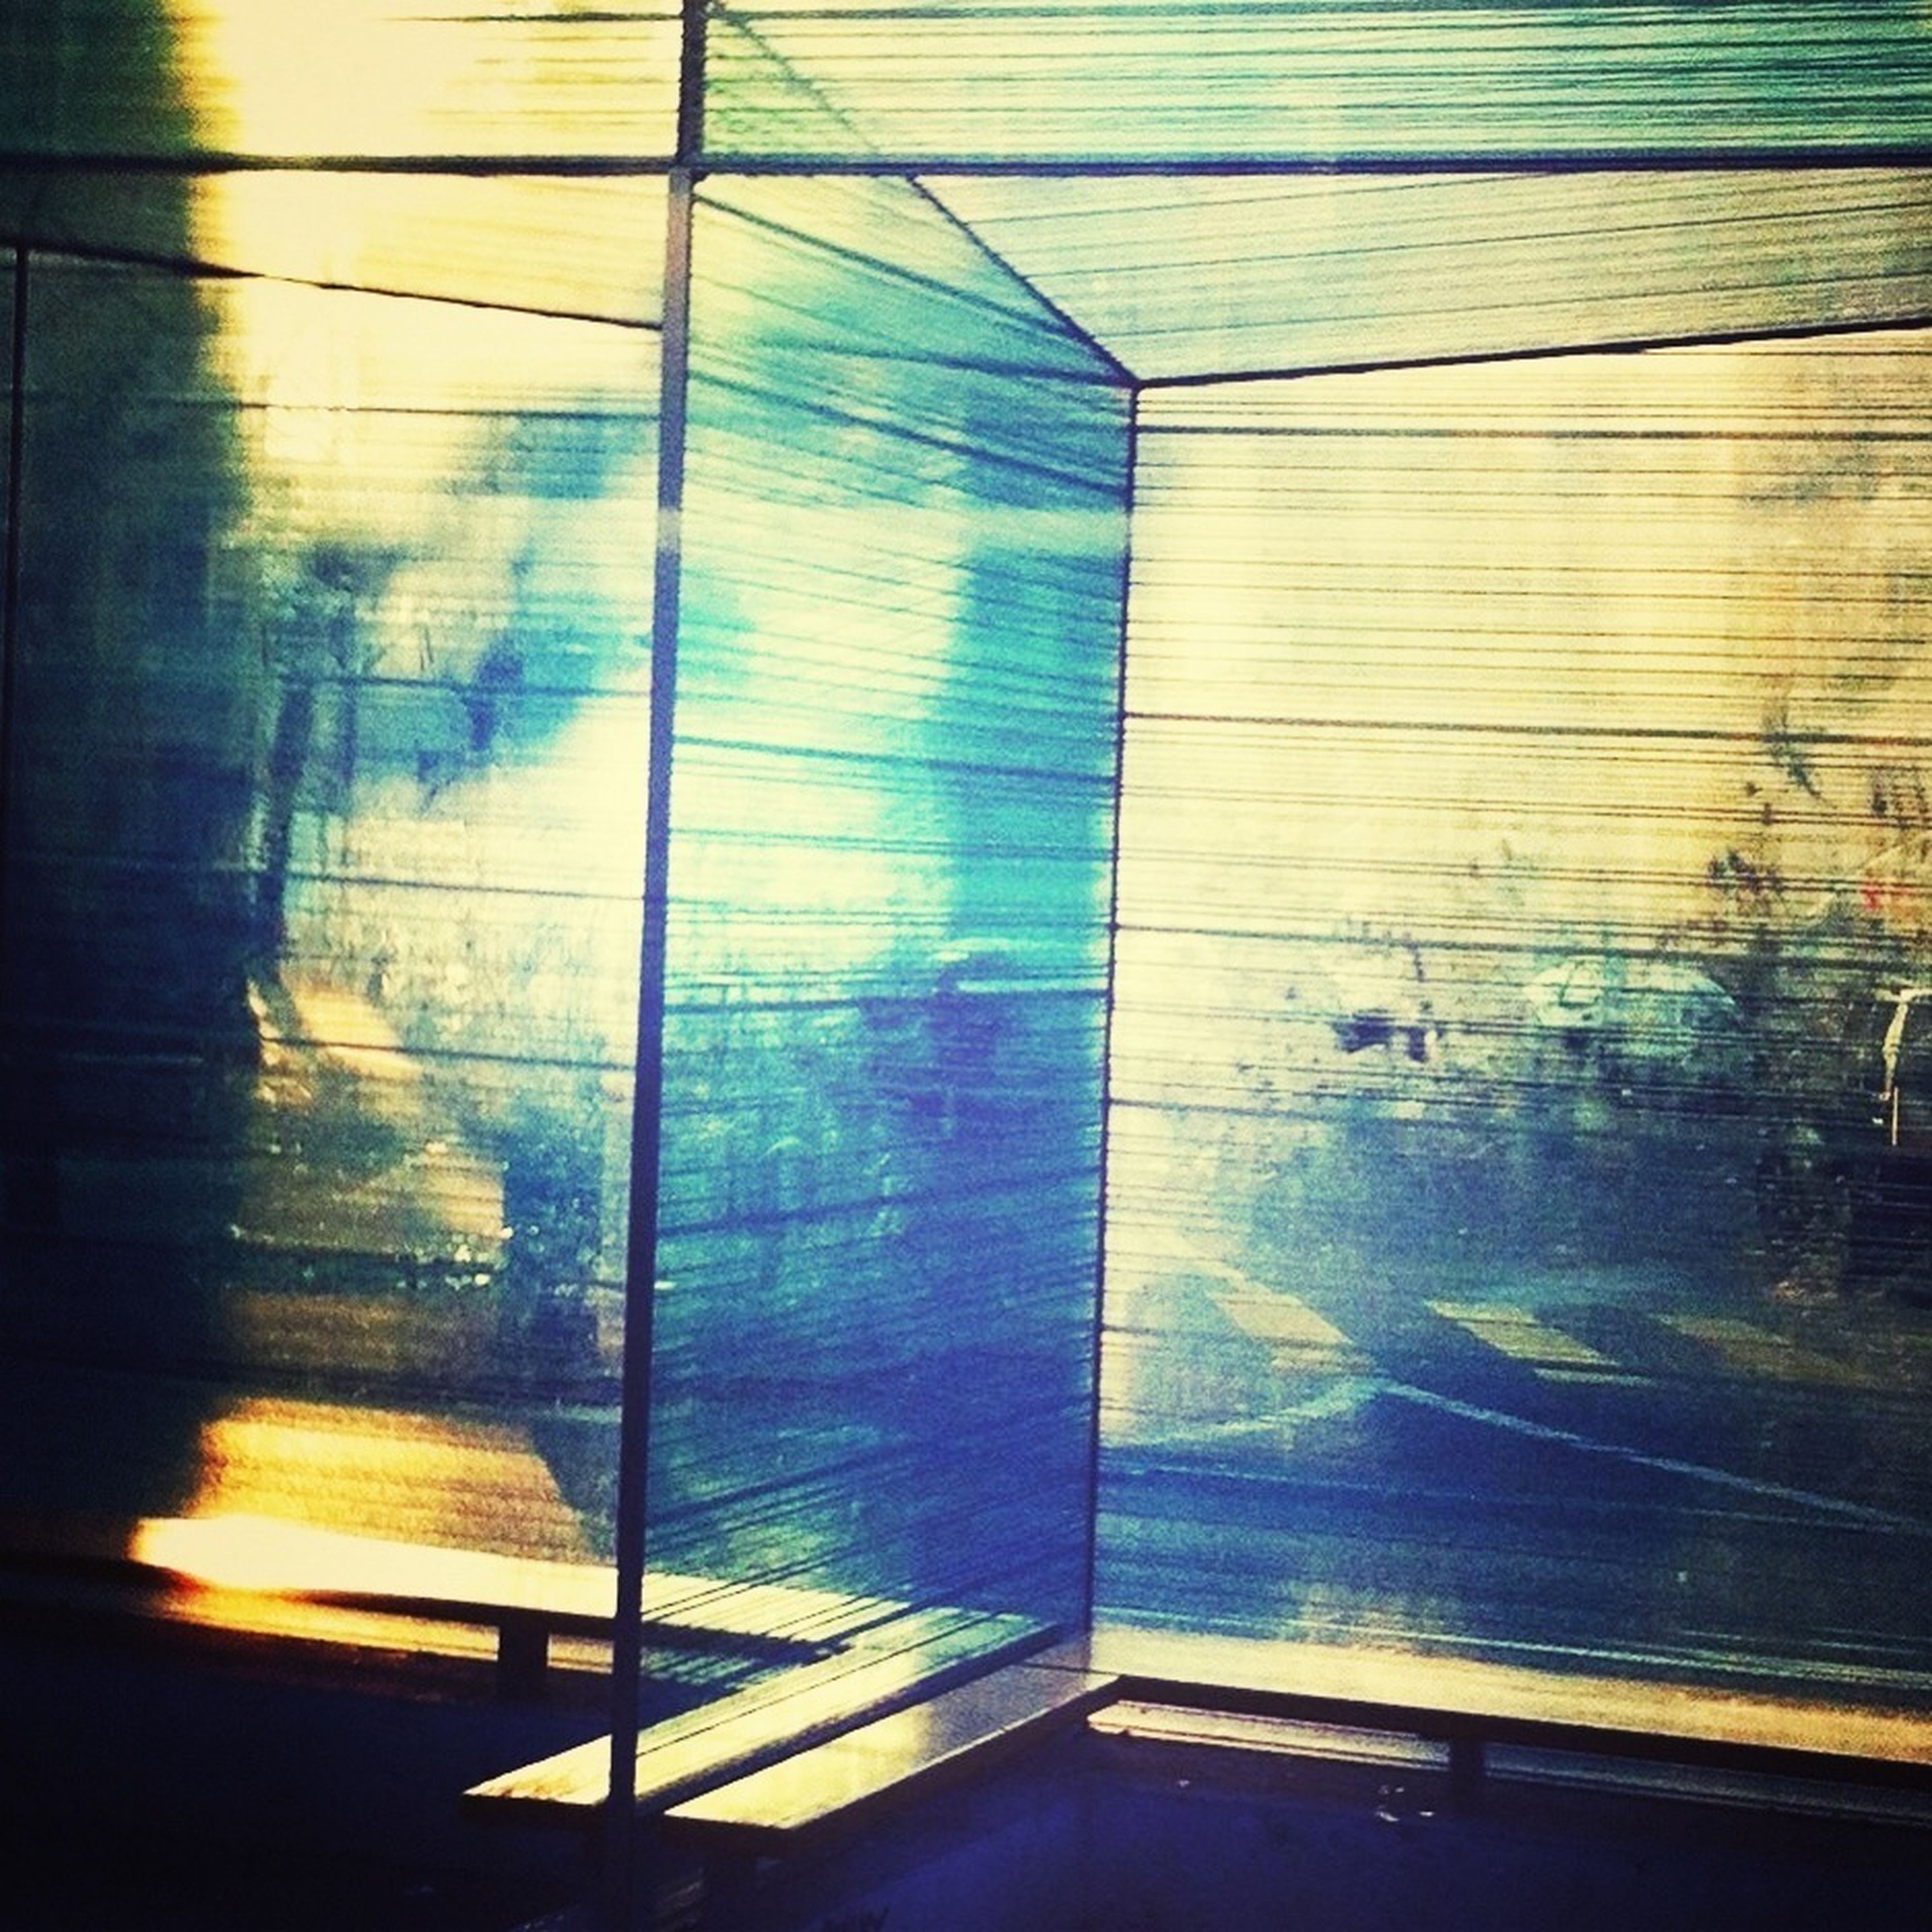 indoors, window, reflection, sunlight, wall - building feature, glass - material, built structure, transparent, curtain, wood - material, shadow, architecture, house, closed, no people, wall, day, door, home interior, water